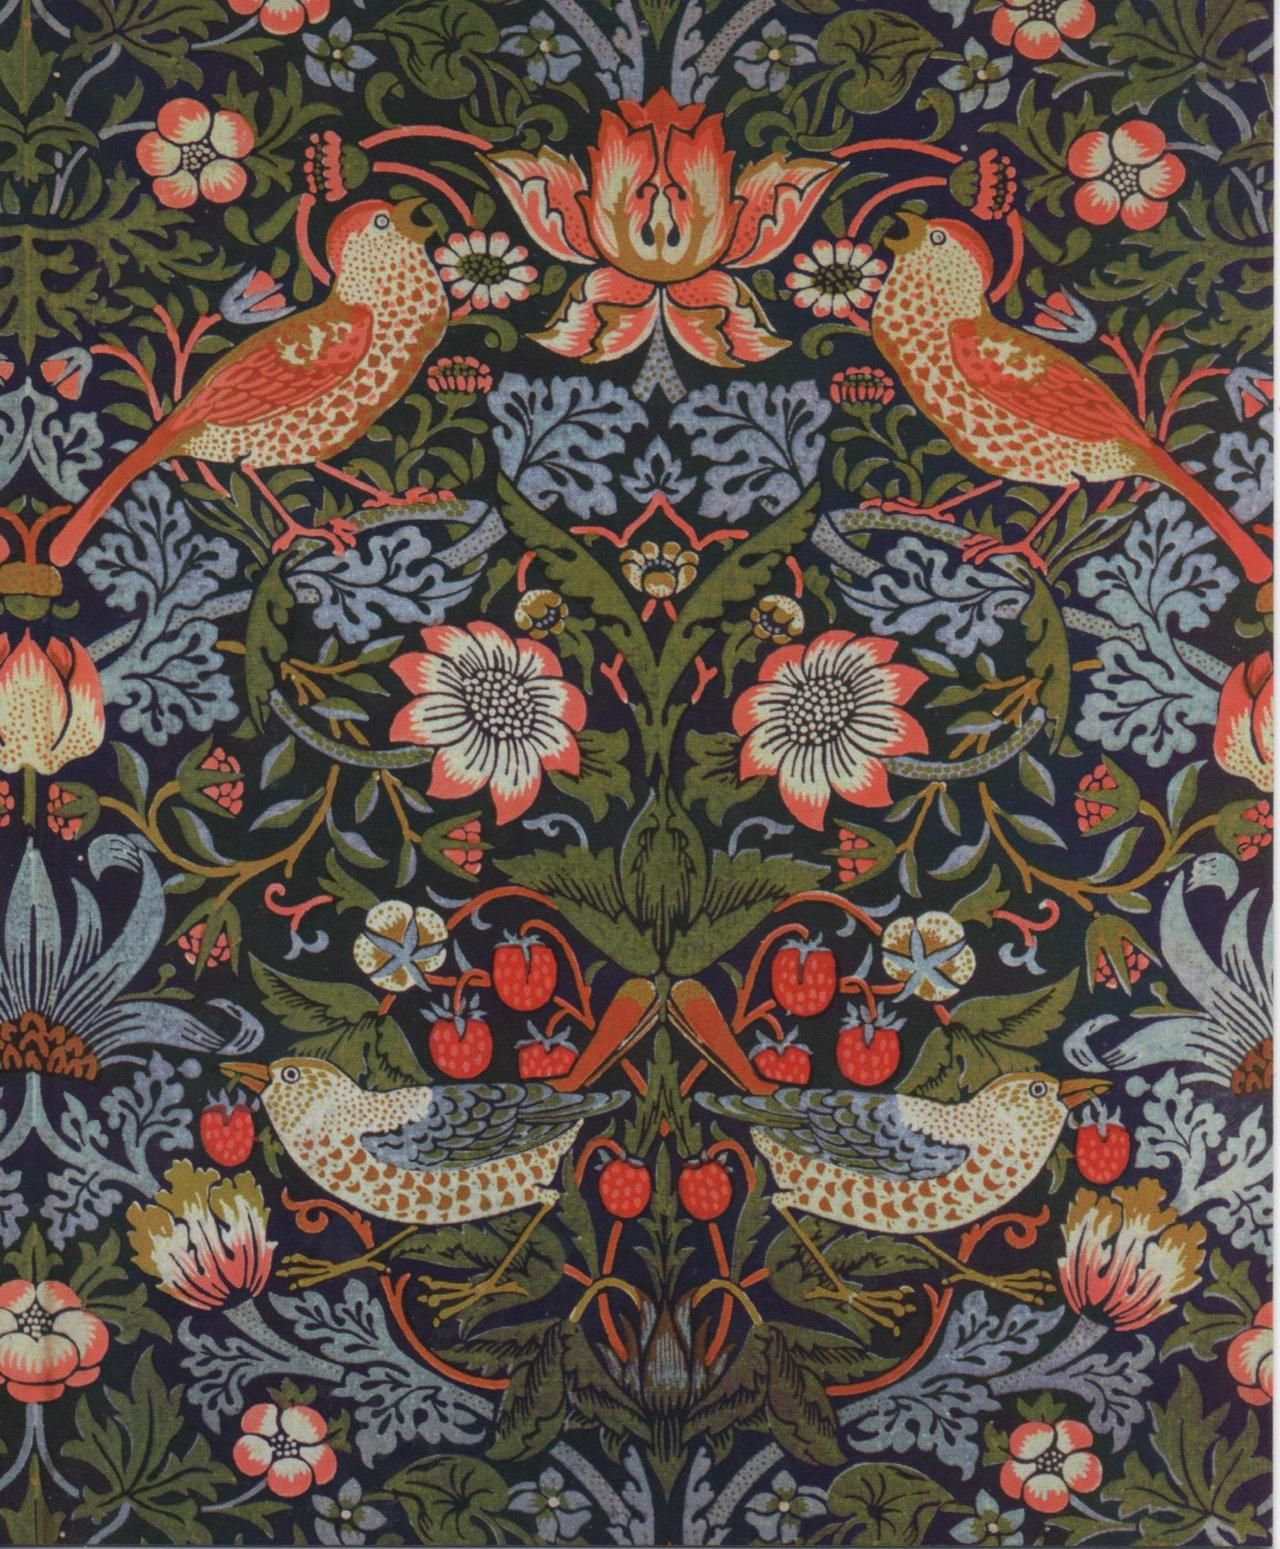 My favorite. Strawberry Thief by William Morris, 1883